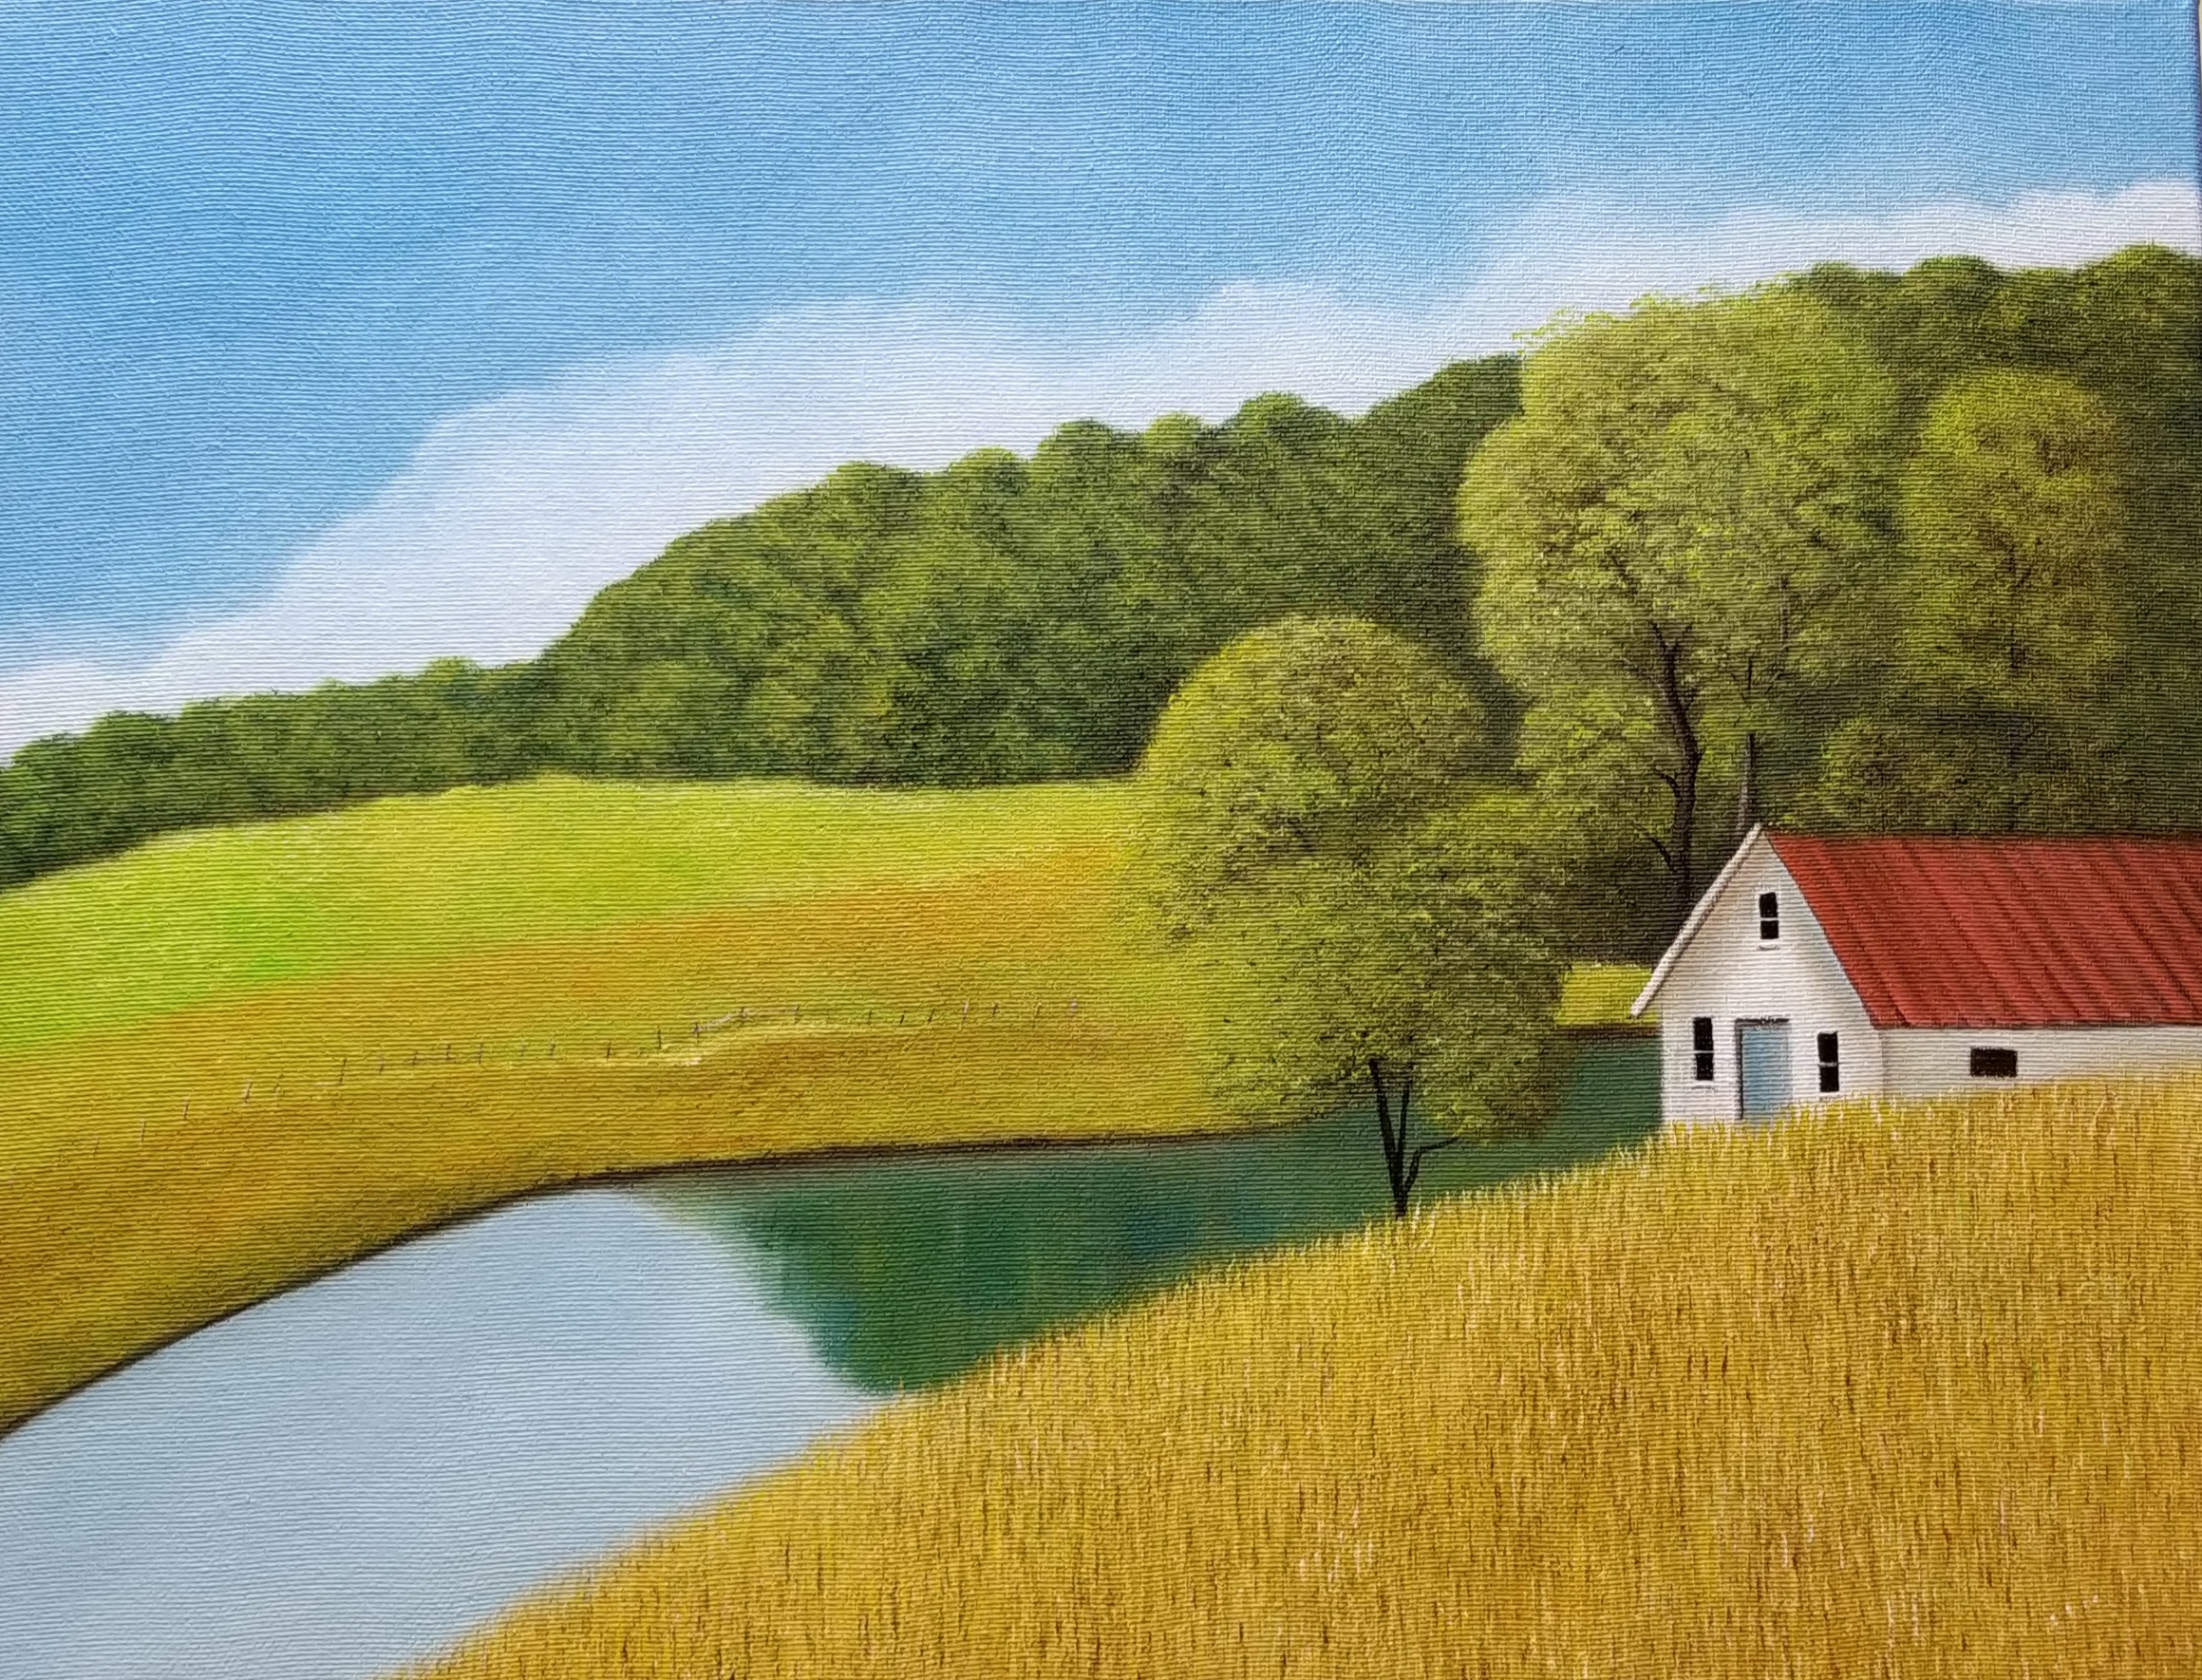 Lackey_Morgan Farm near Homeplace Restaurant - Catawba_Acrylic 16 X 20 6.26.19.jpg